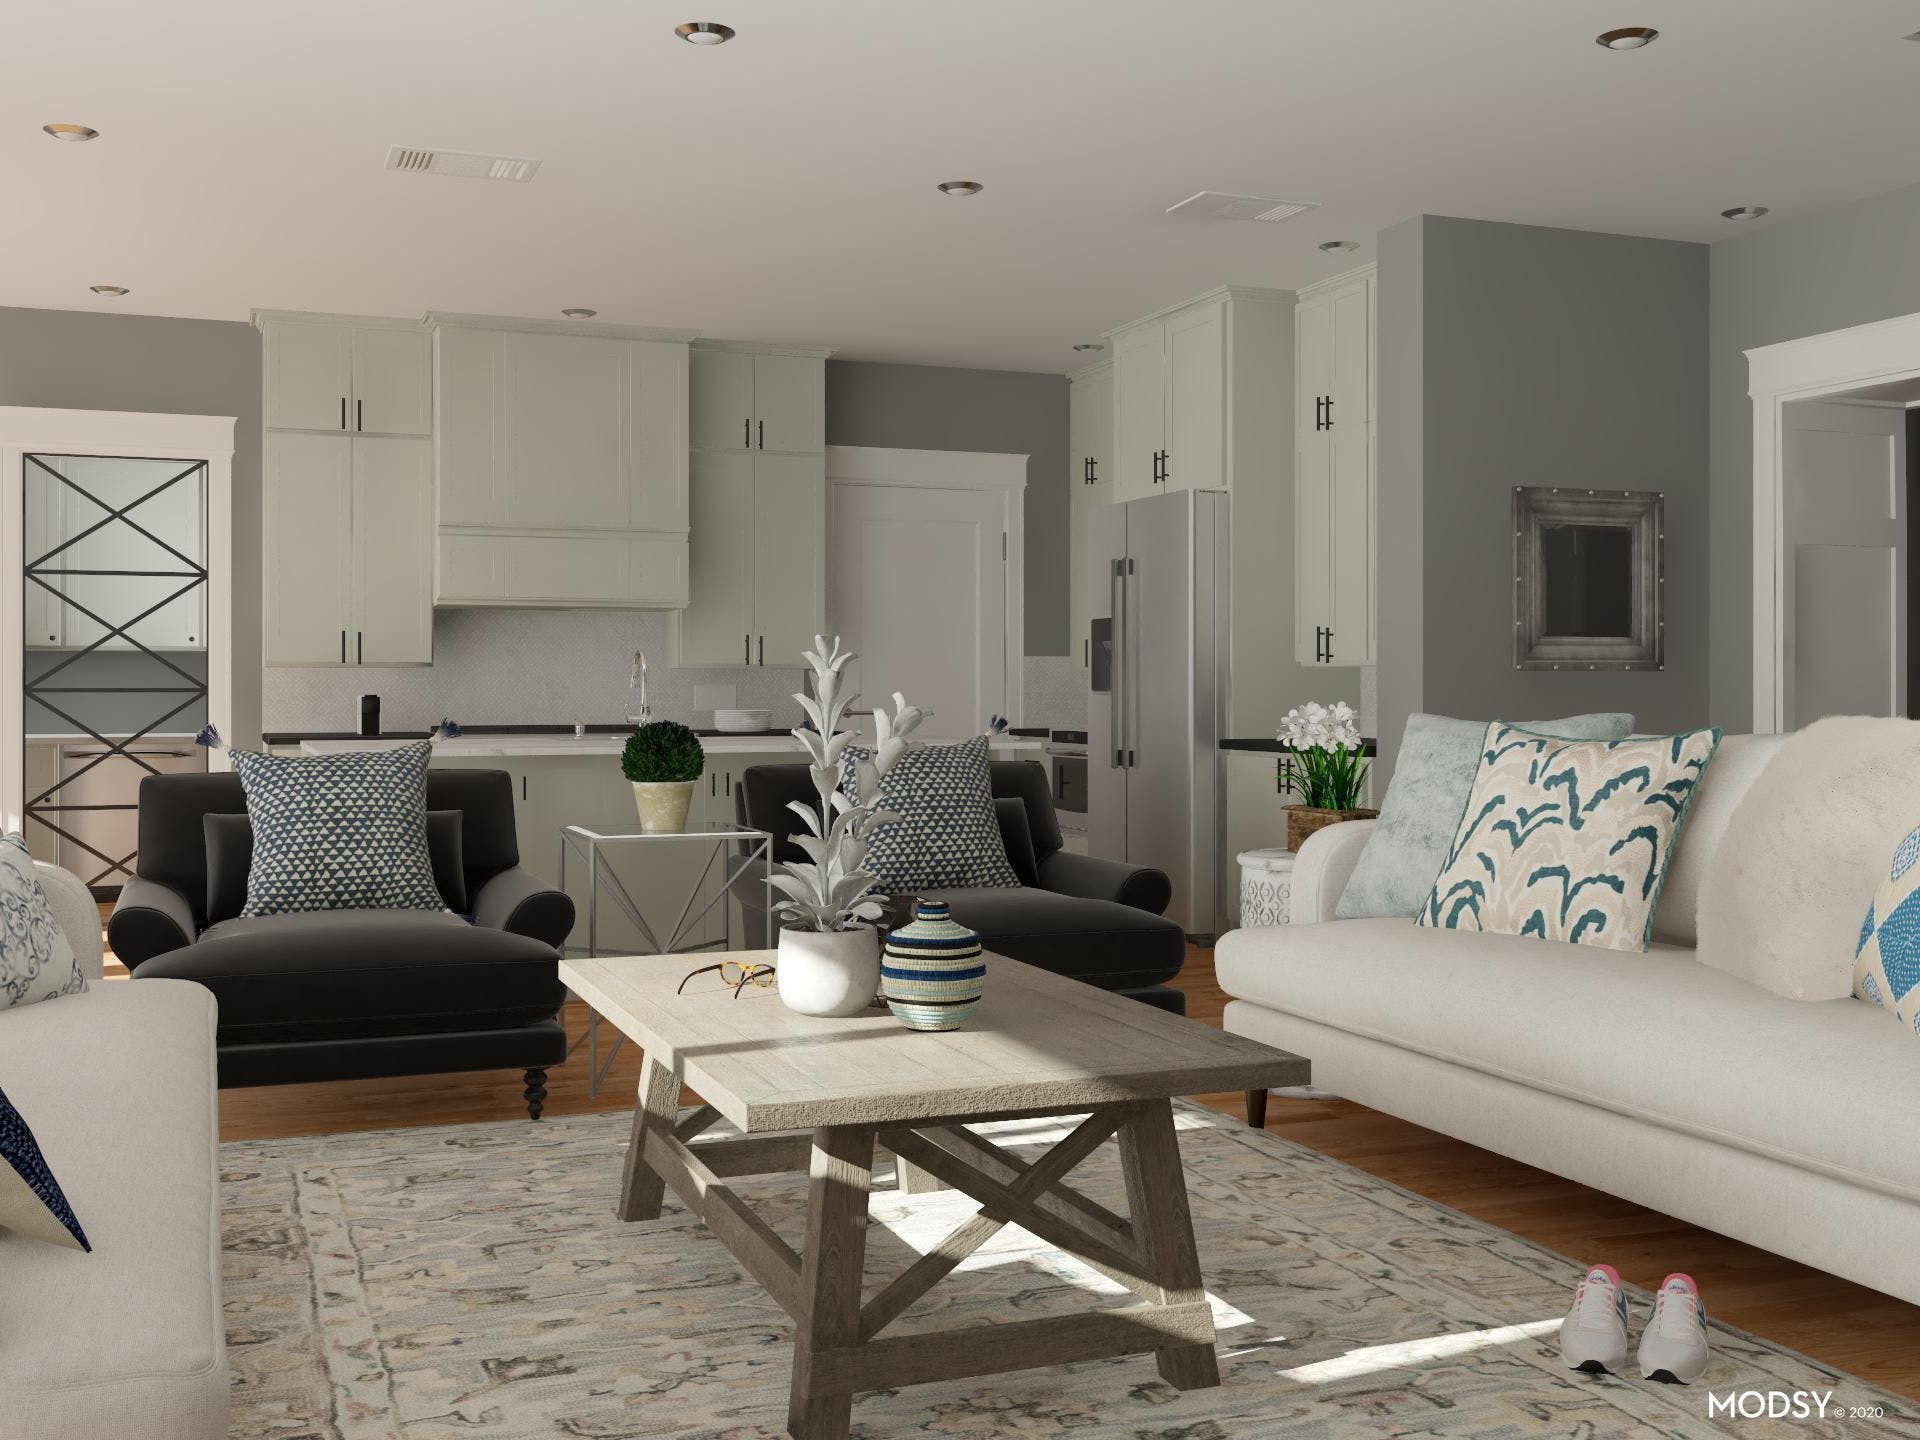 Cozy Living Room Seating Options